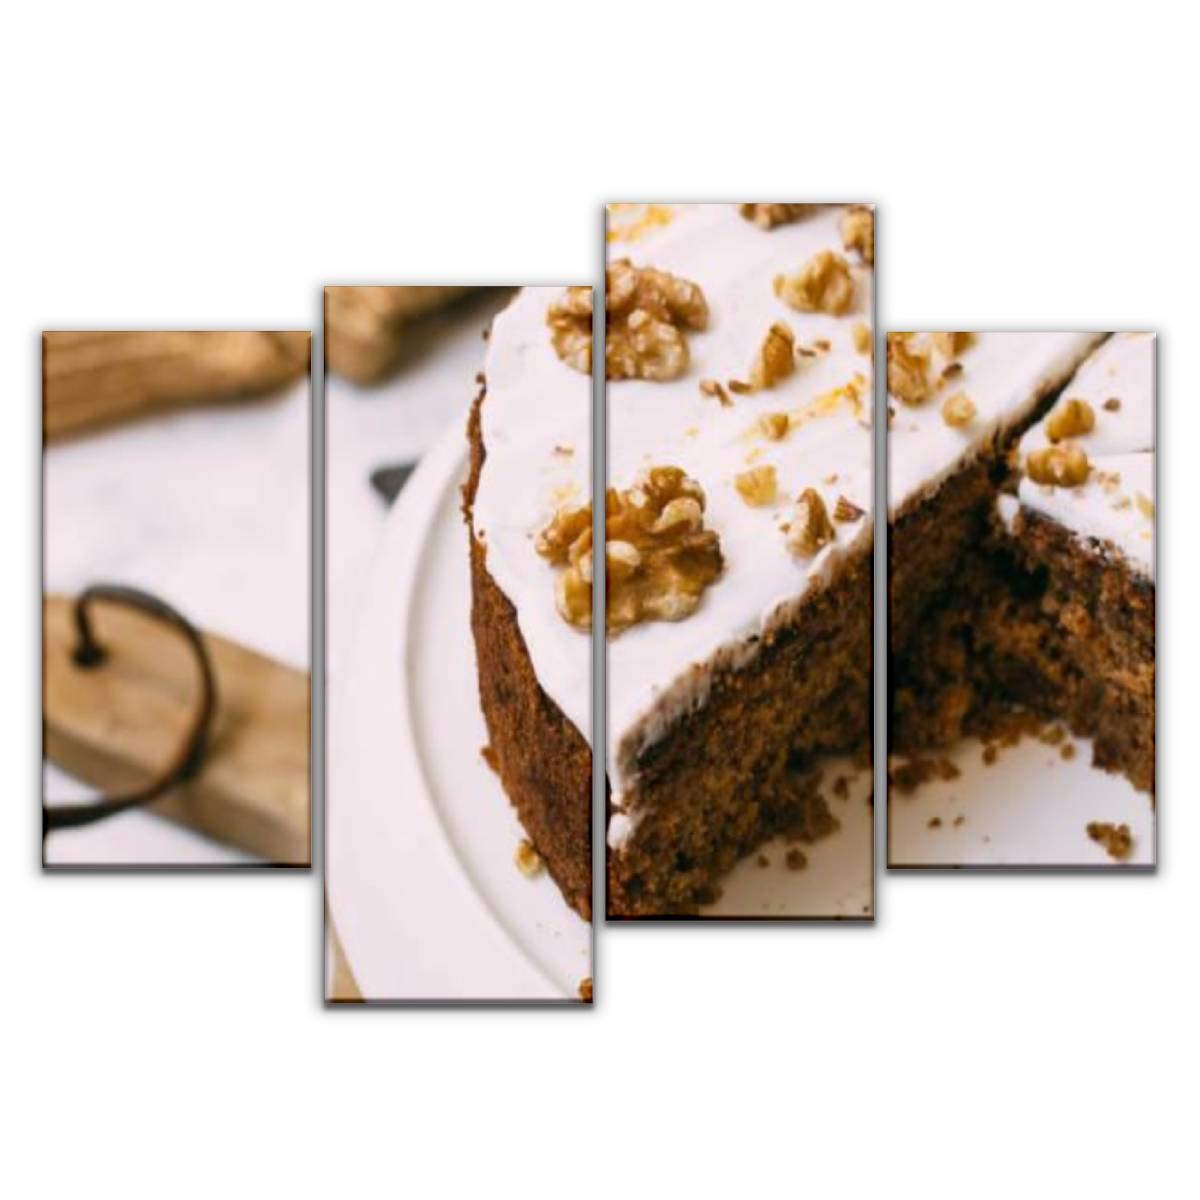 Sudoiseau 4 Panels Canvas Wall Art, Carrot Cake with Cream Cheese Icing and Walnut Vegan and Gluten Free Painting Pictures Print On Canvas Ready to Hang for Home Decoration by Sudoiseau